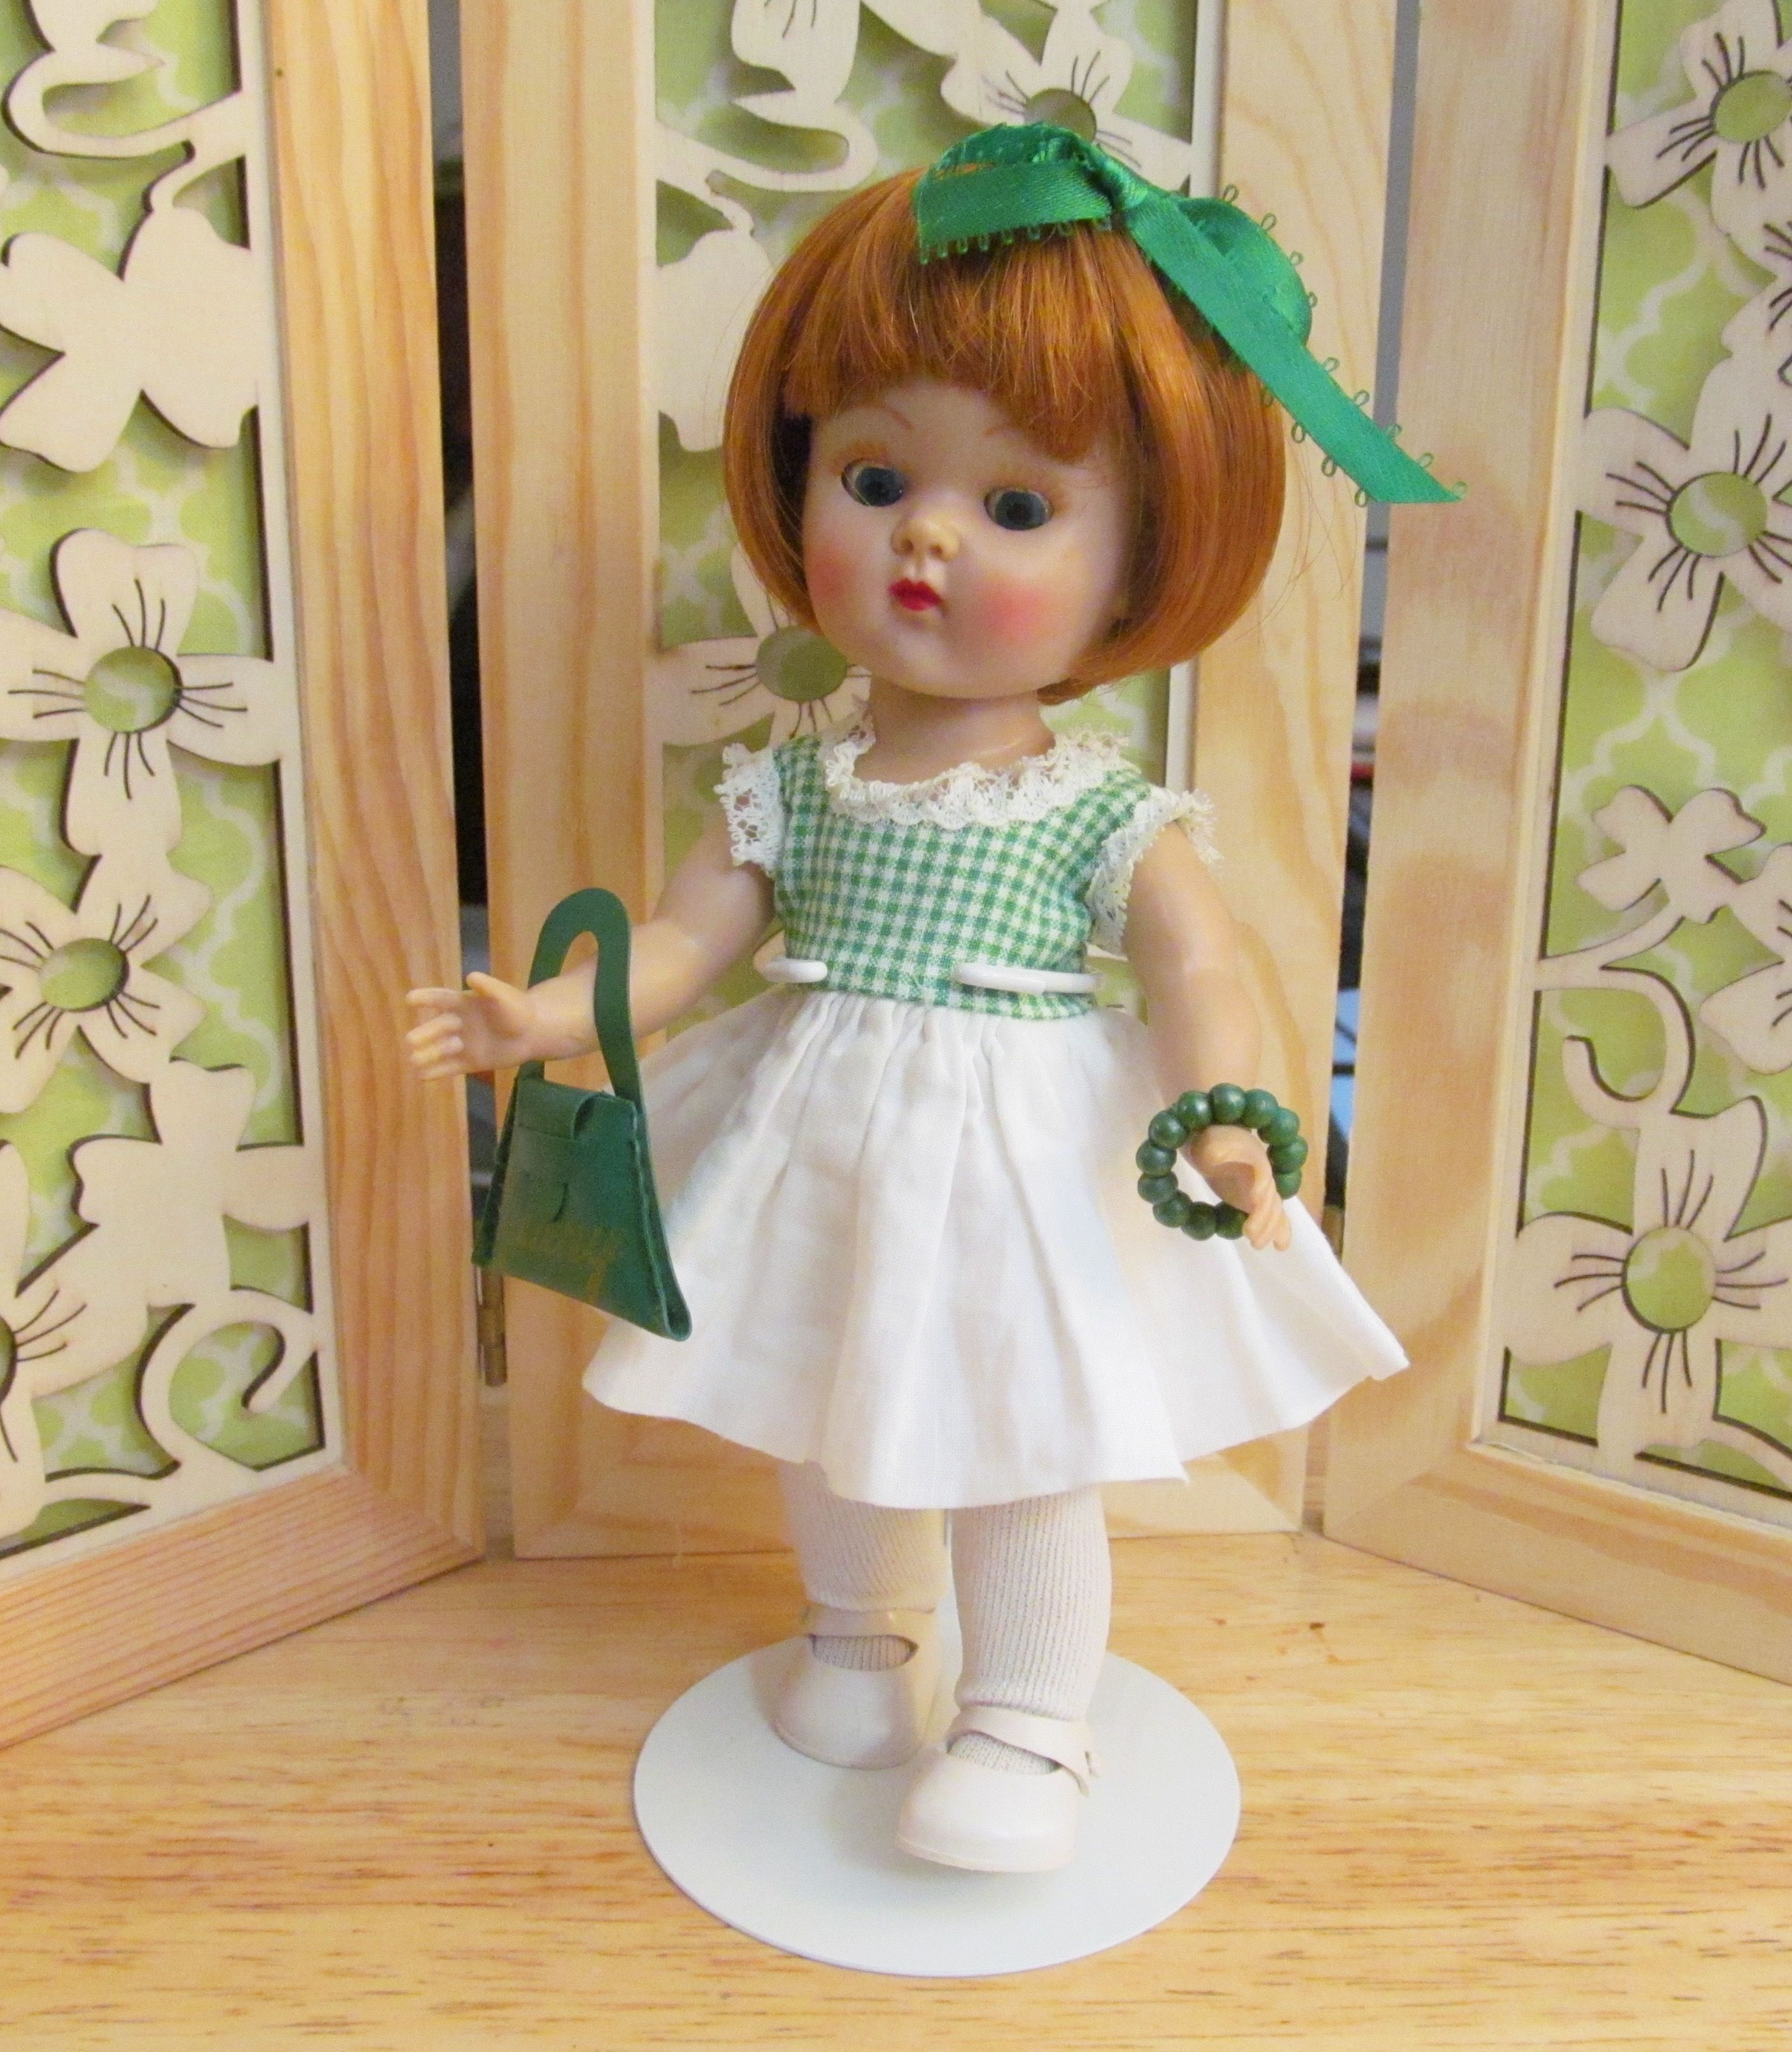 Azalea s Dress-up Dolls: Fashion Dress-up Games Vintage 50s dolls fashion